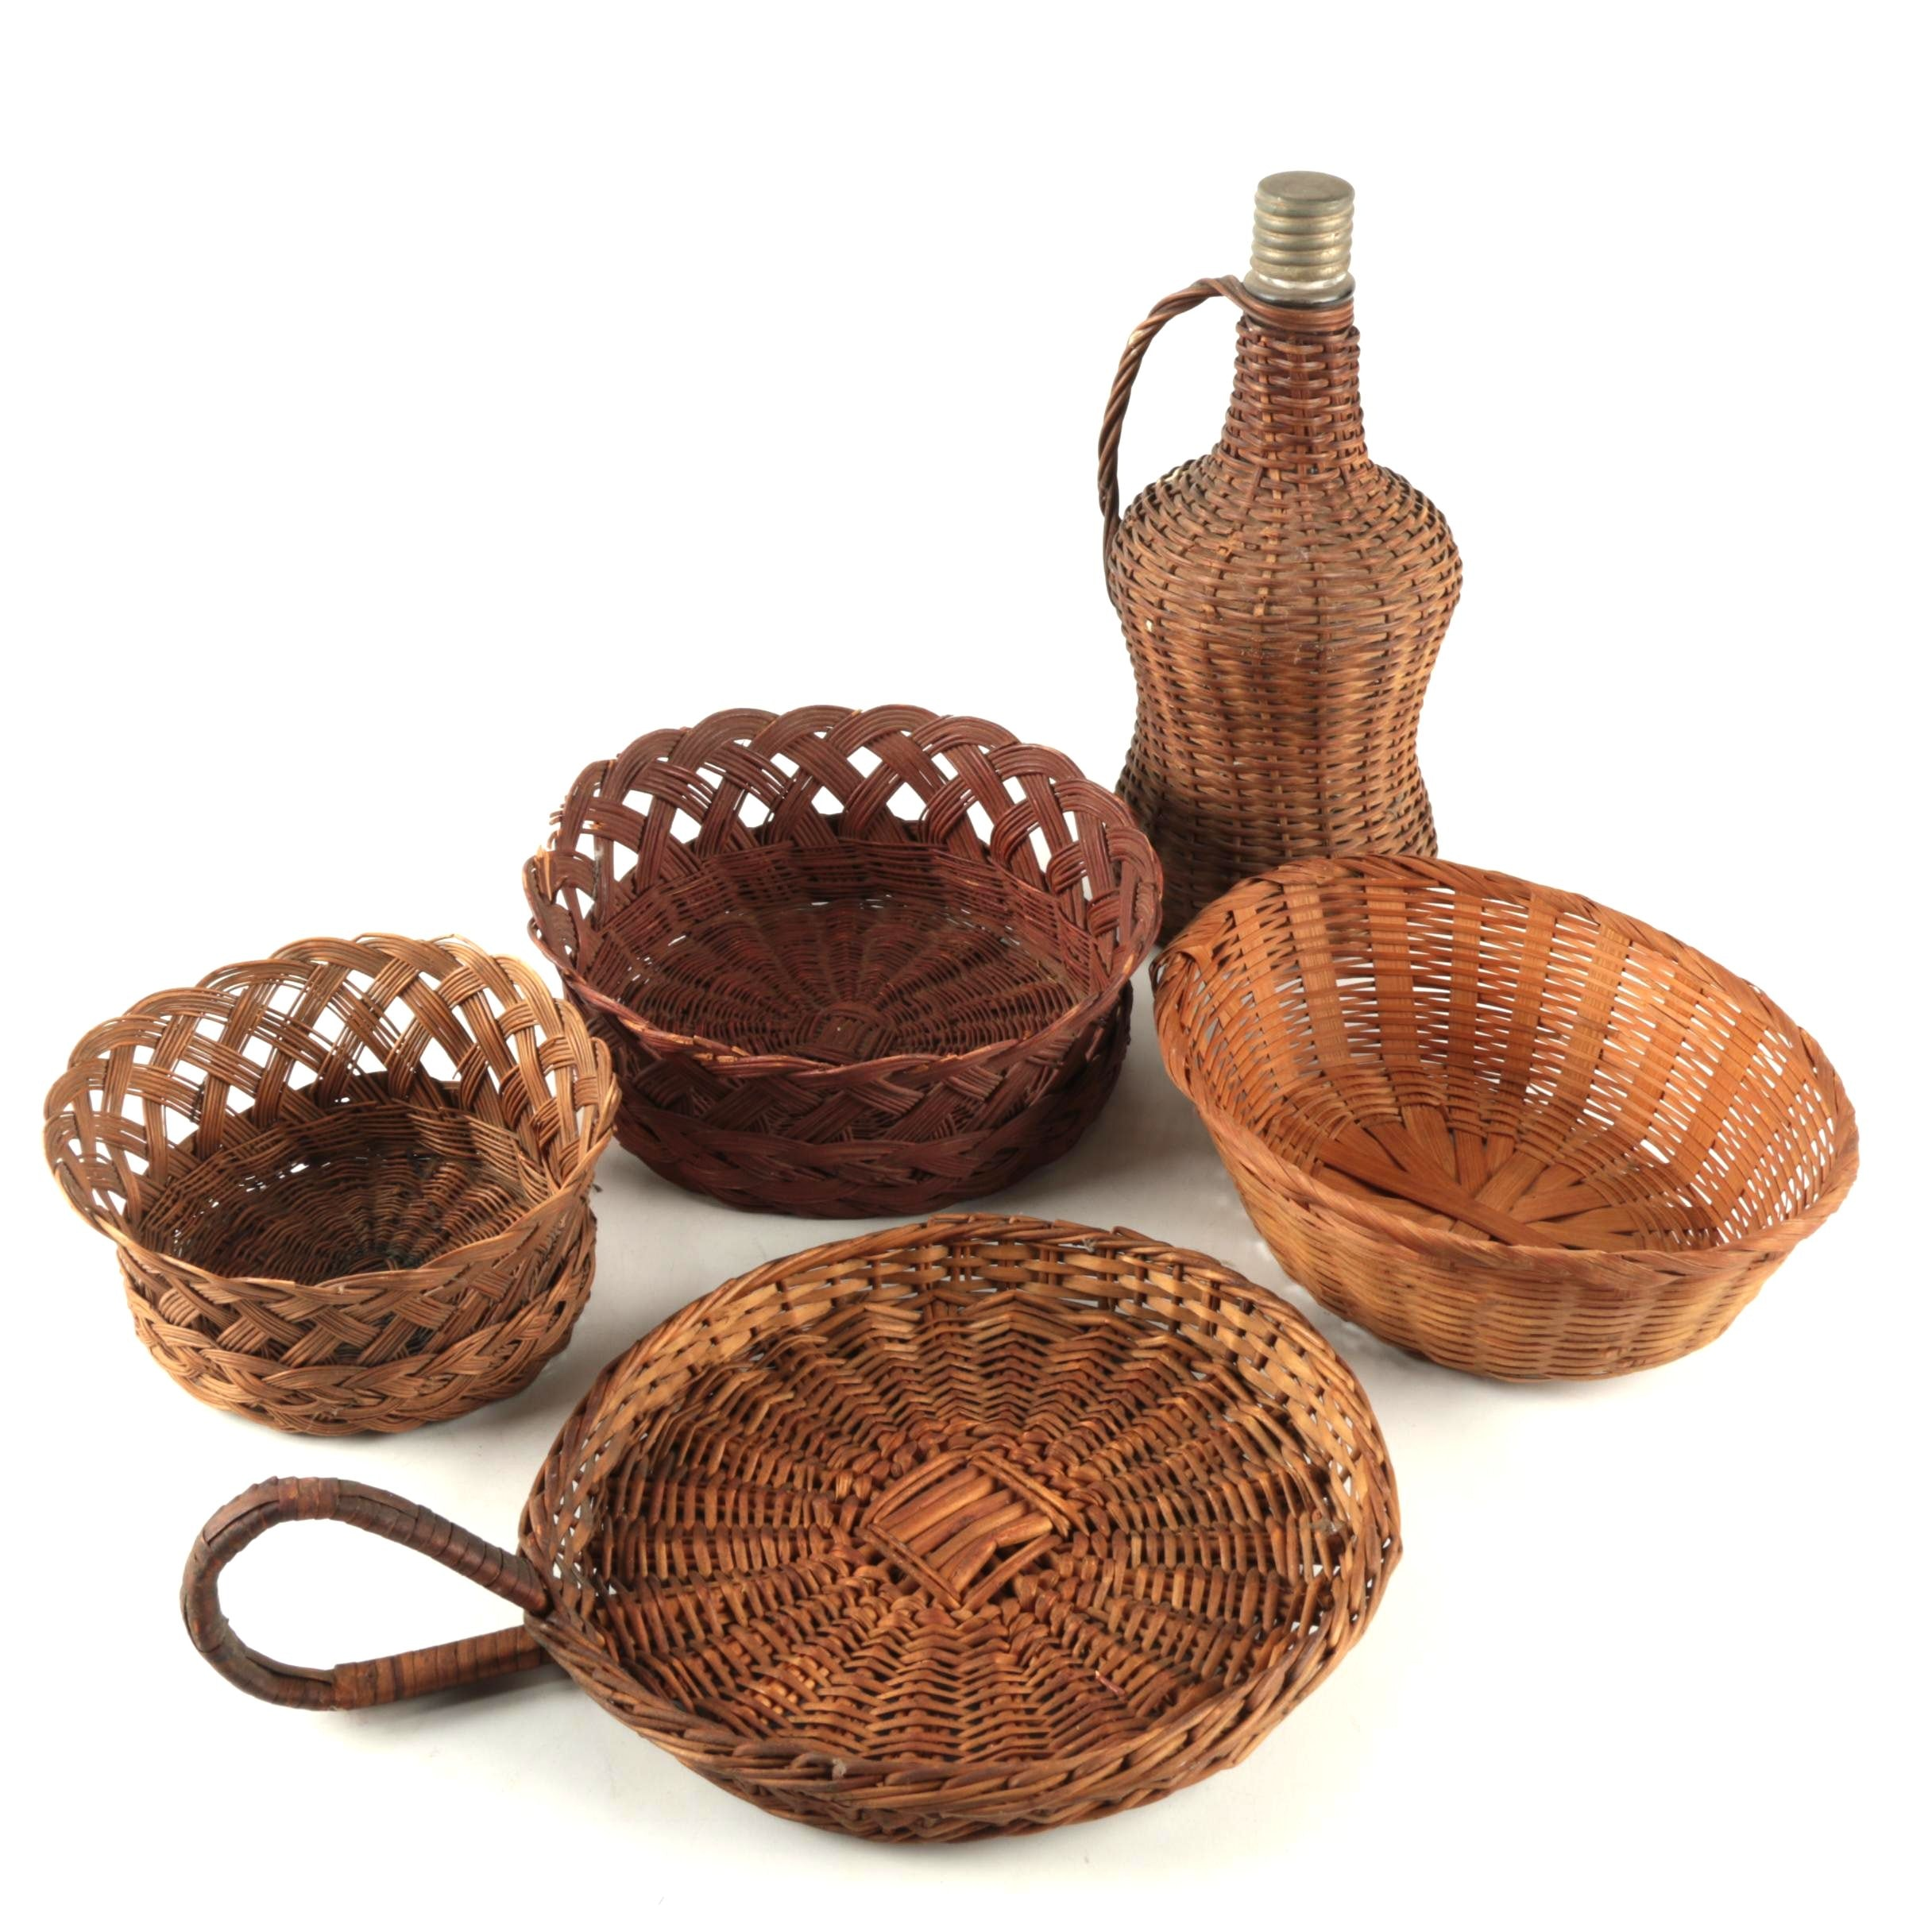 Assortment of Woven Baskets